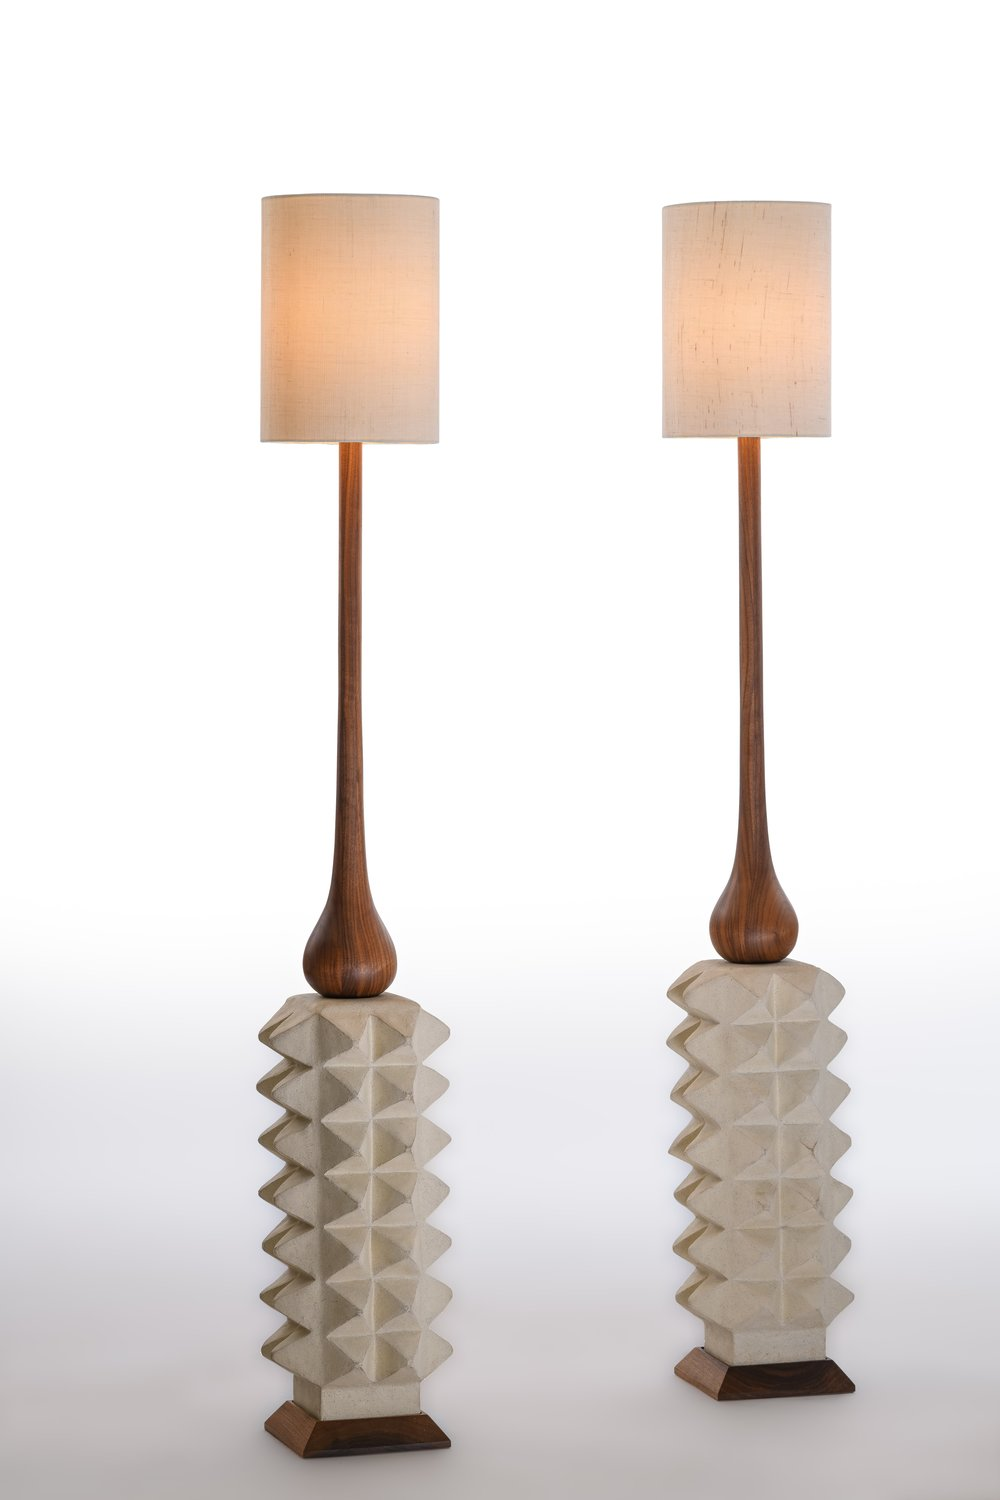 """Apex Lamps (Set of 2) 2018,  Collaboration between Shizue Imai and Chad Jensen. Hand-Turned Walnut, Glazed Stoneware, Dimmer Switch Included, 57"""" x 8.5"""" x 8.5"""" ea. / Unique"""